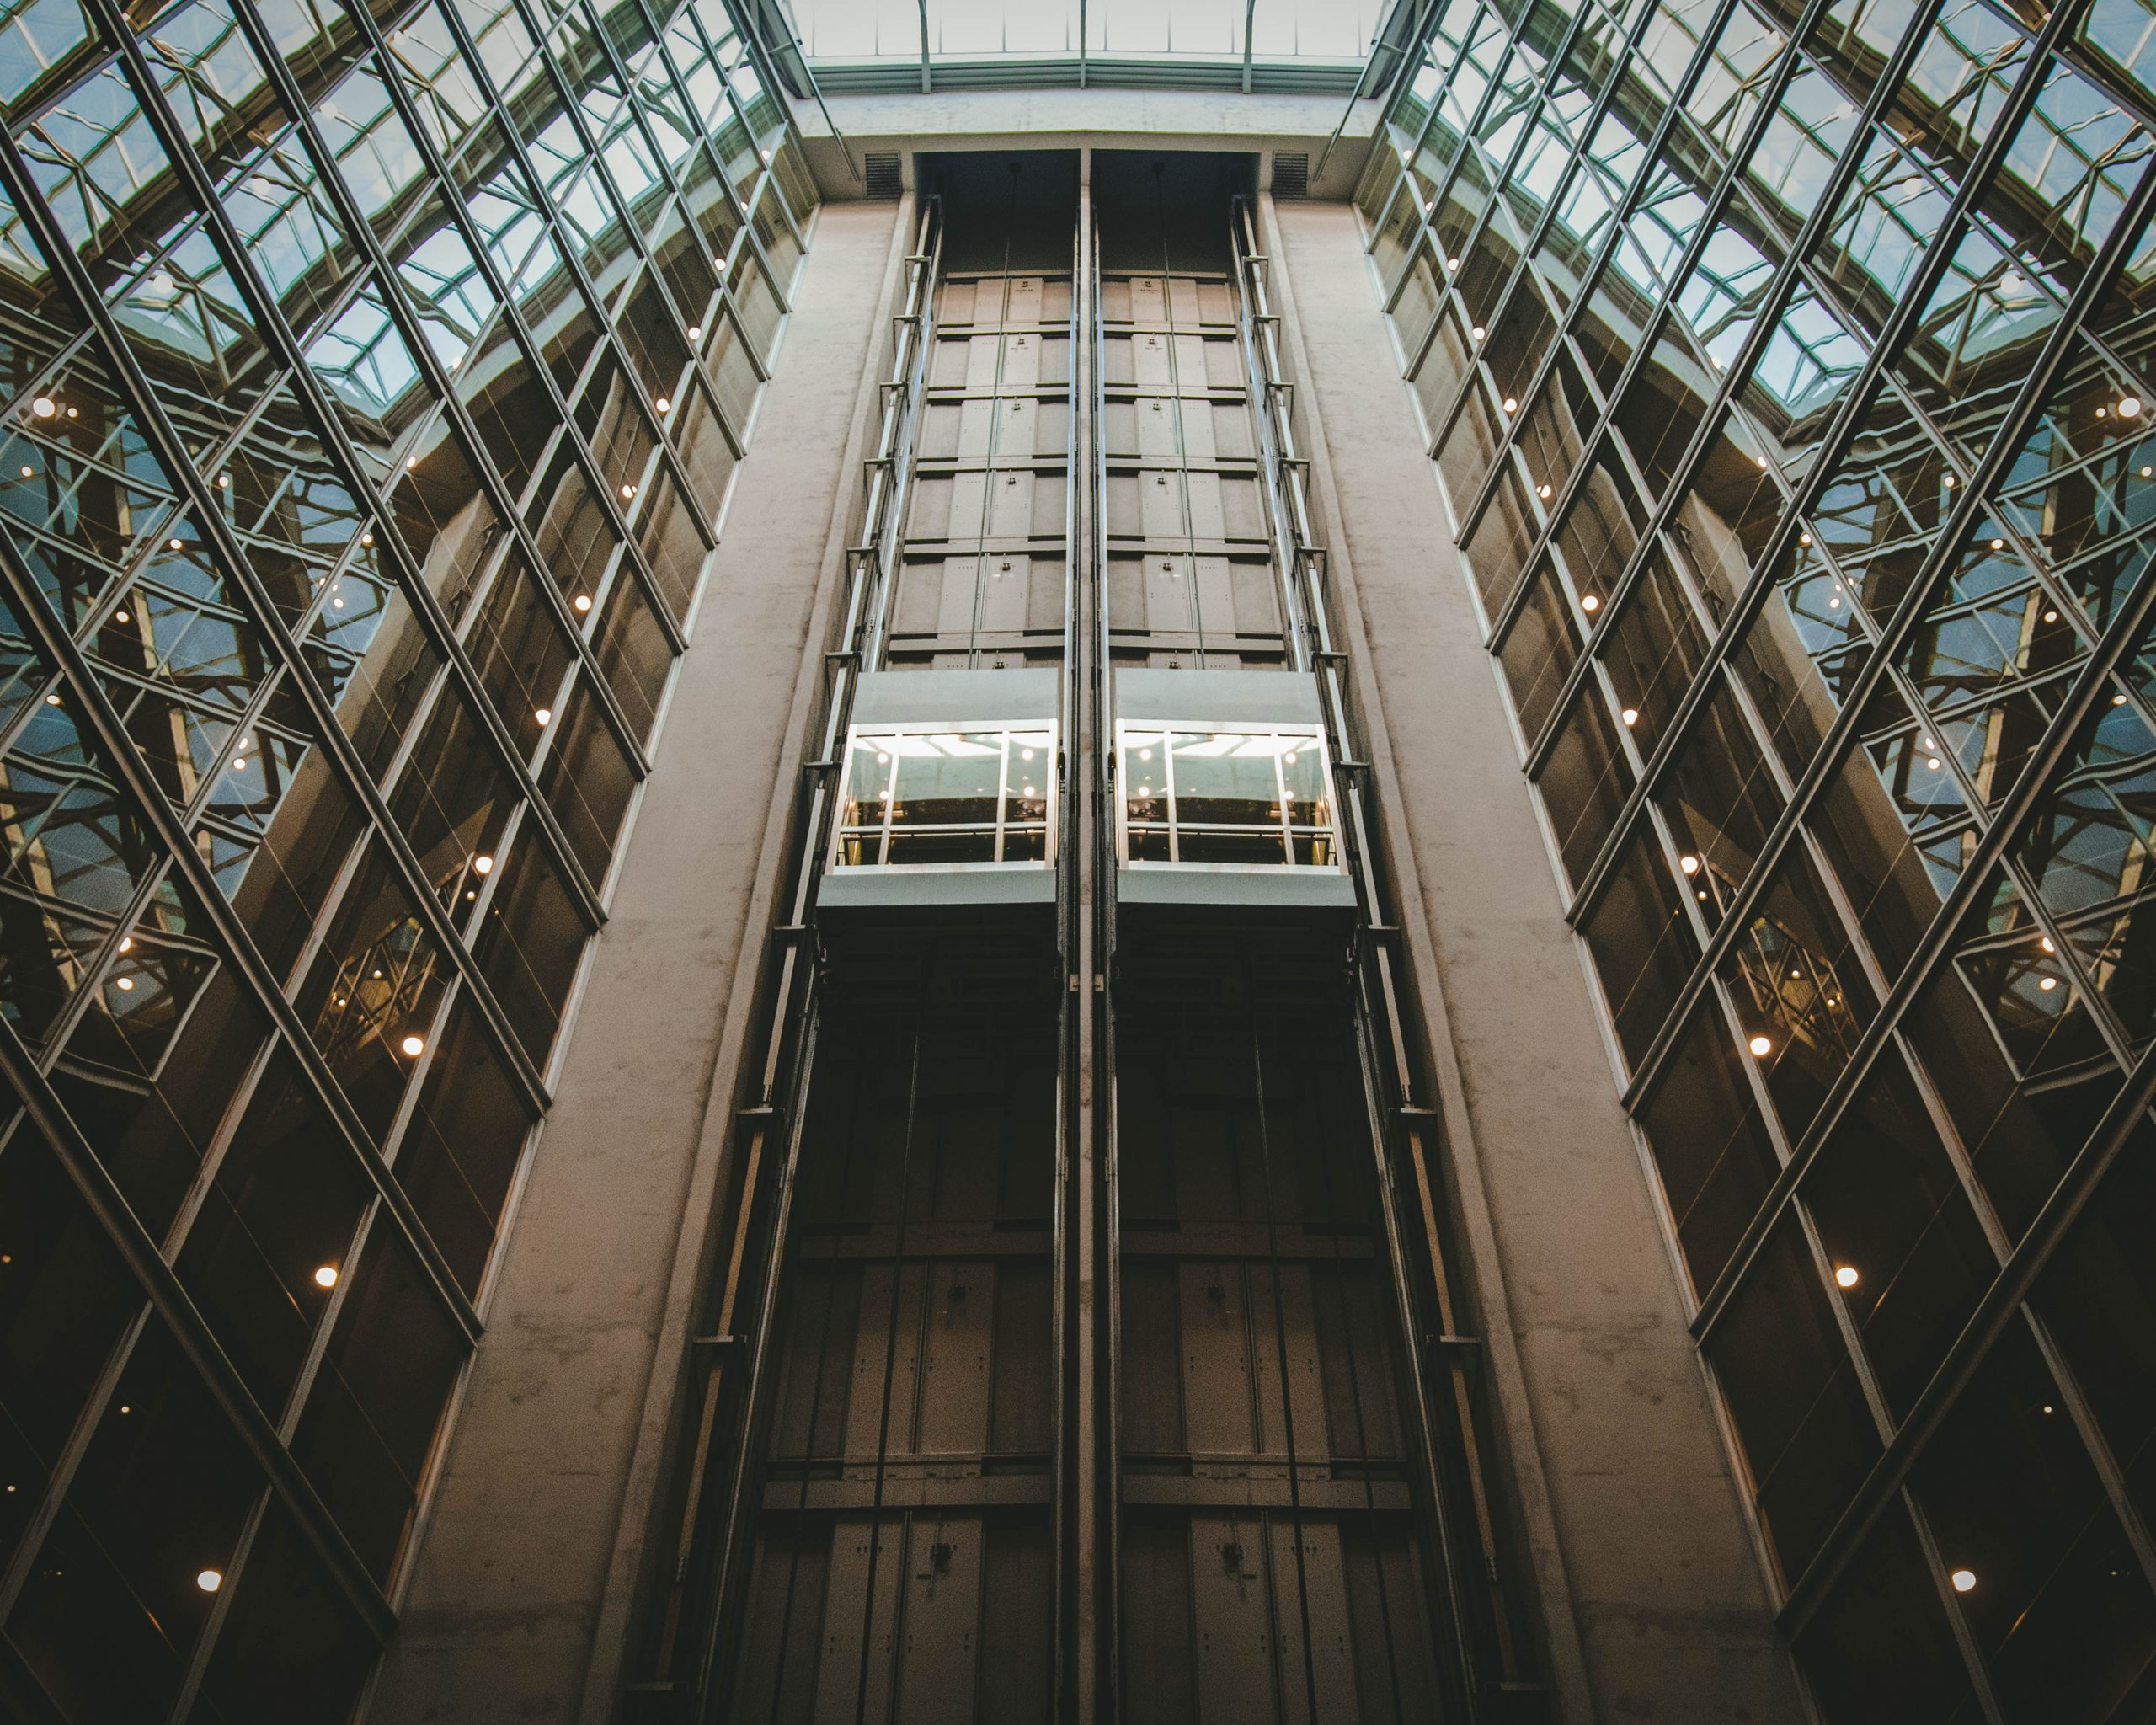 Commercial Lifts – Helping Businesses Meet ADA Requirements